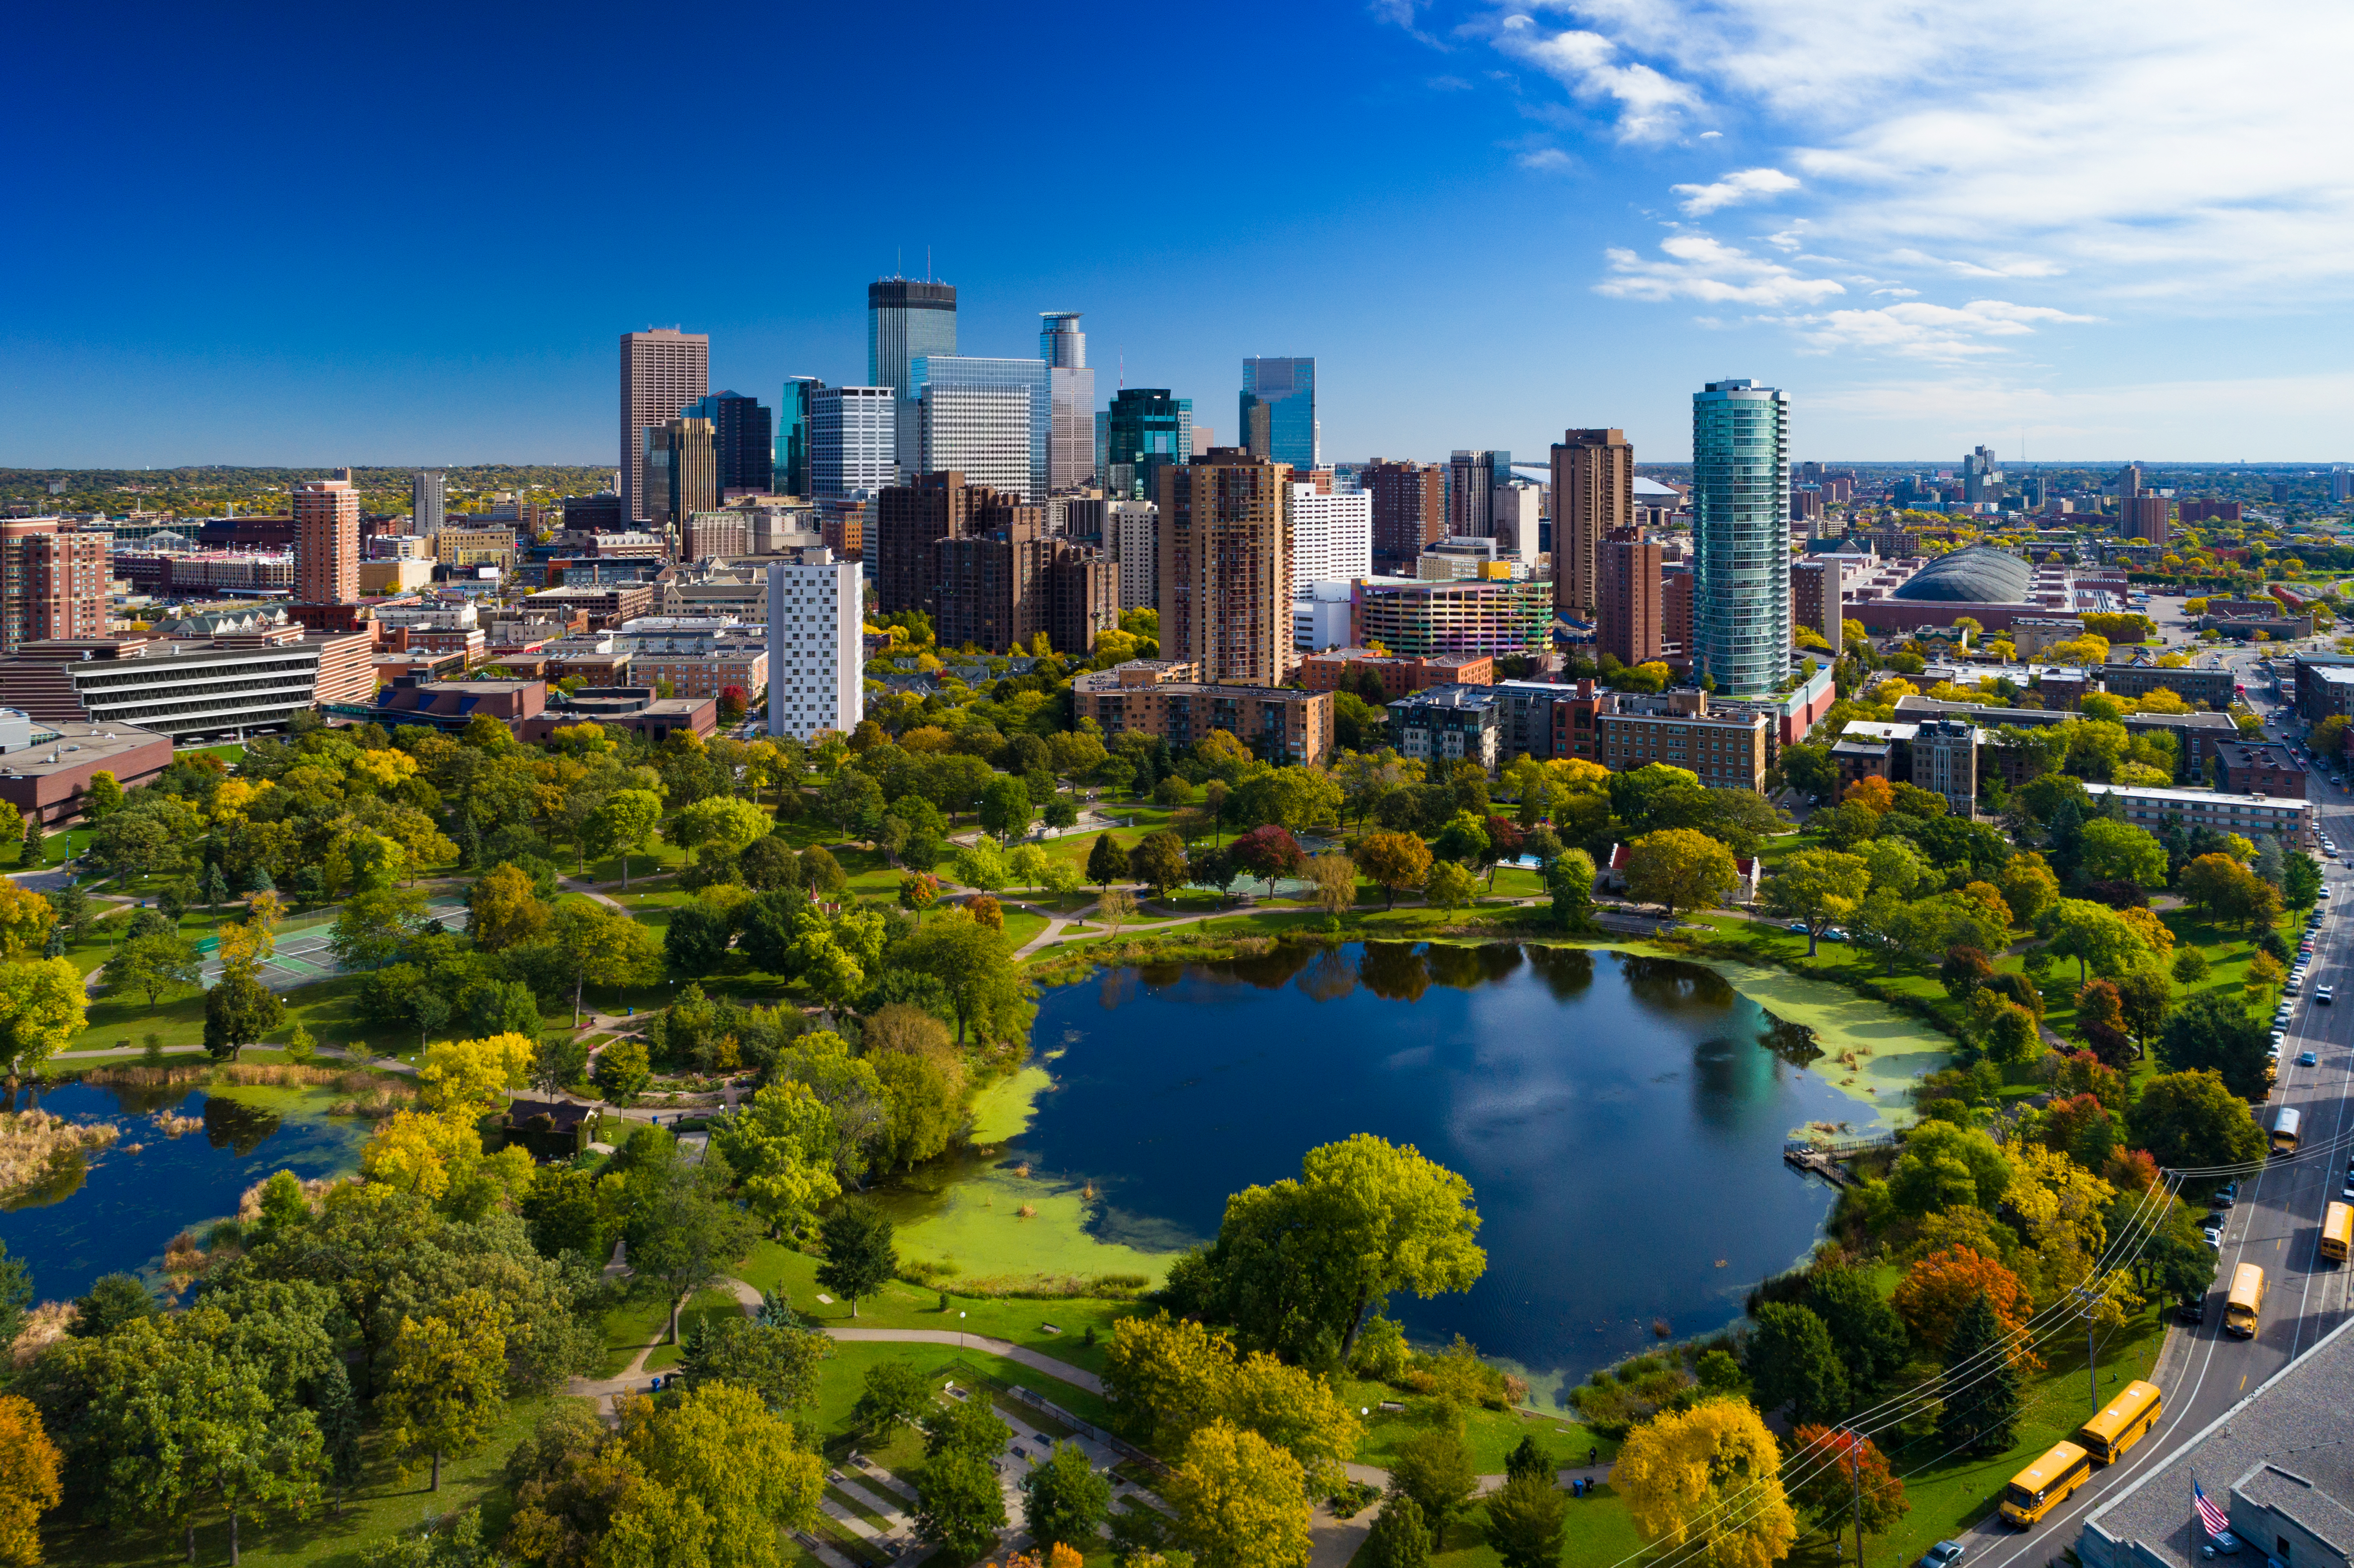 Minneapolis skyline aerial view with park and lake